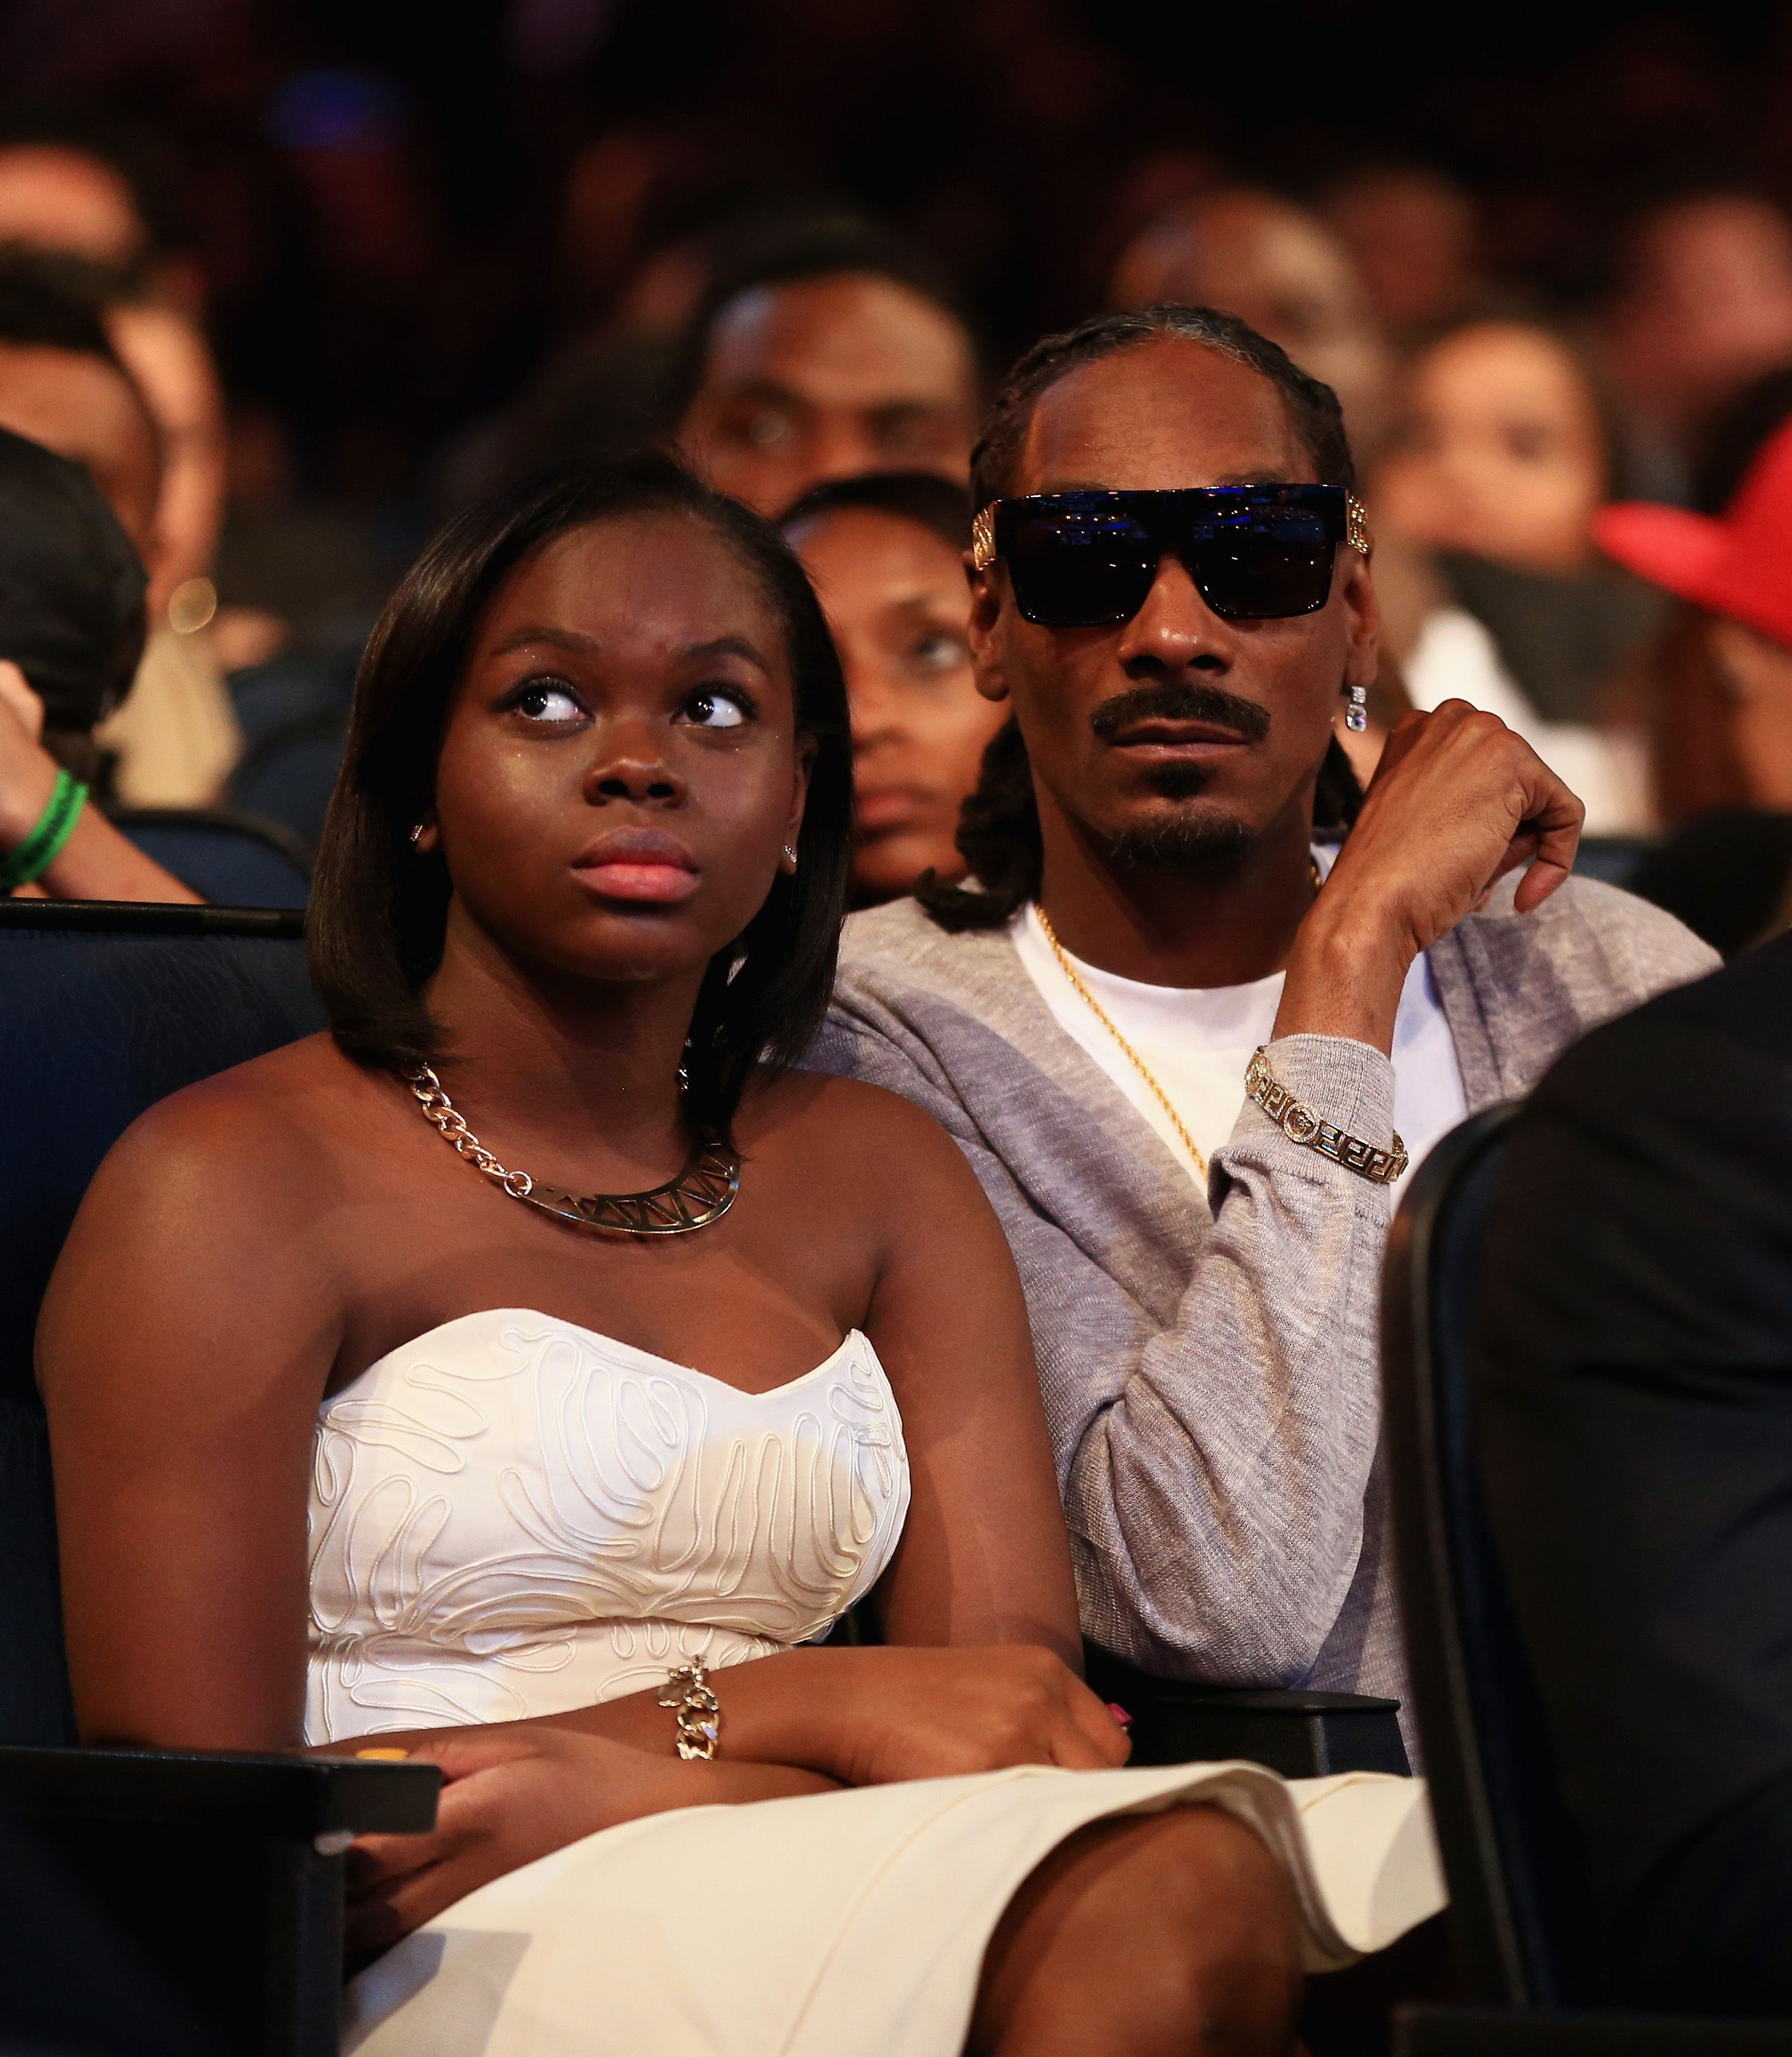 Snoop Dogg and Cori Broadus attend the BET Awards '14 at Nokia Theatre L.A. LIVE on June 29, 2014 in Los Angeles, California   Photo: Getty Images